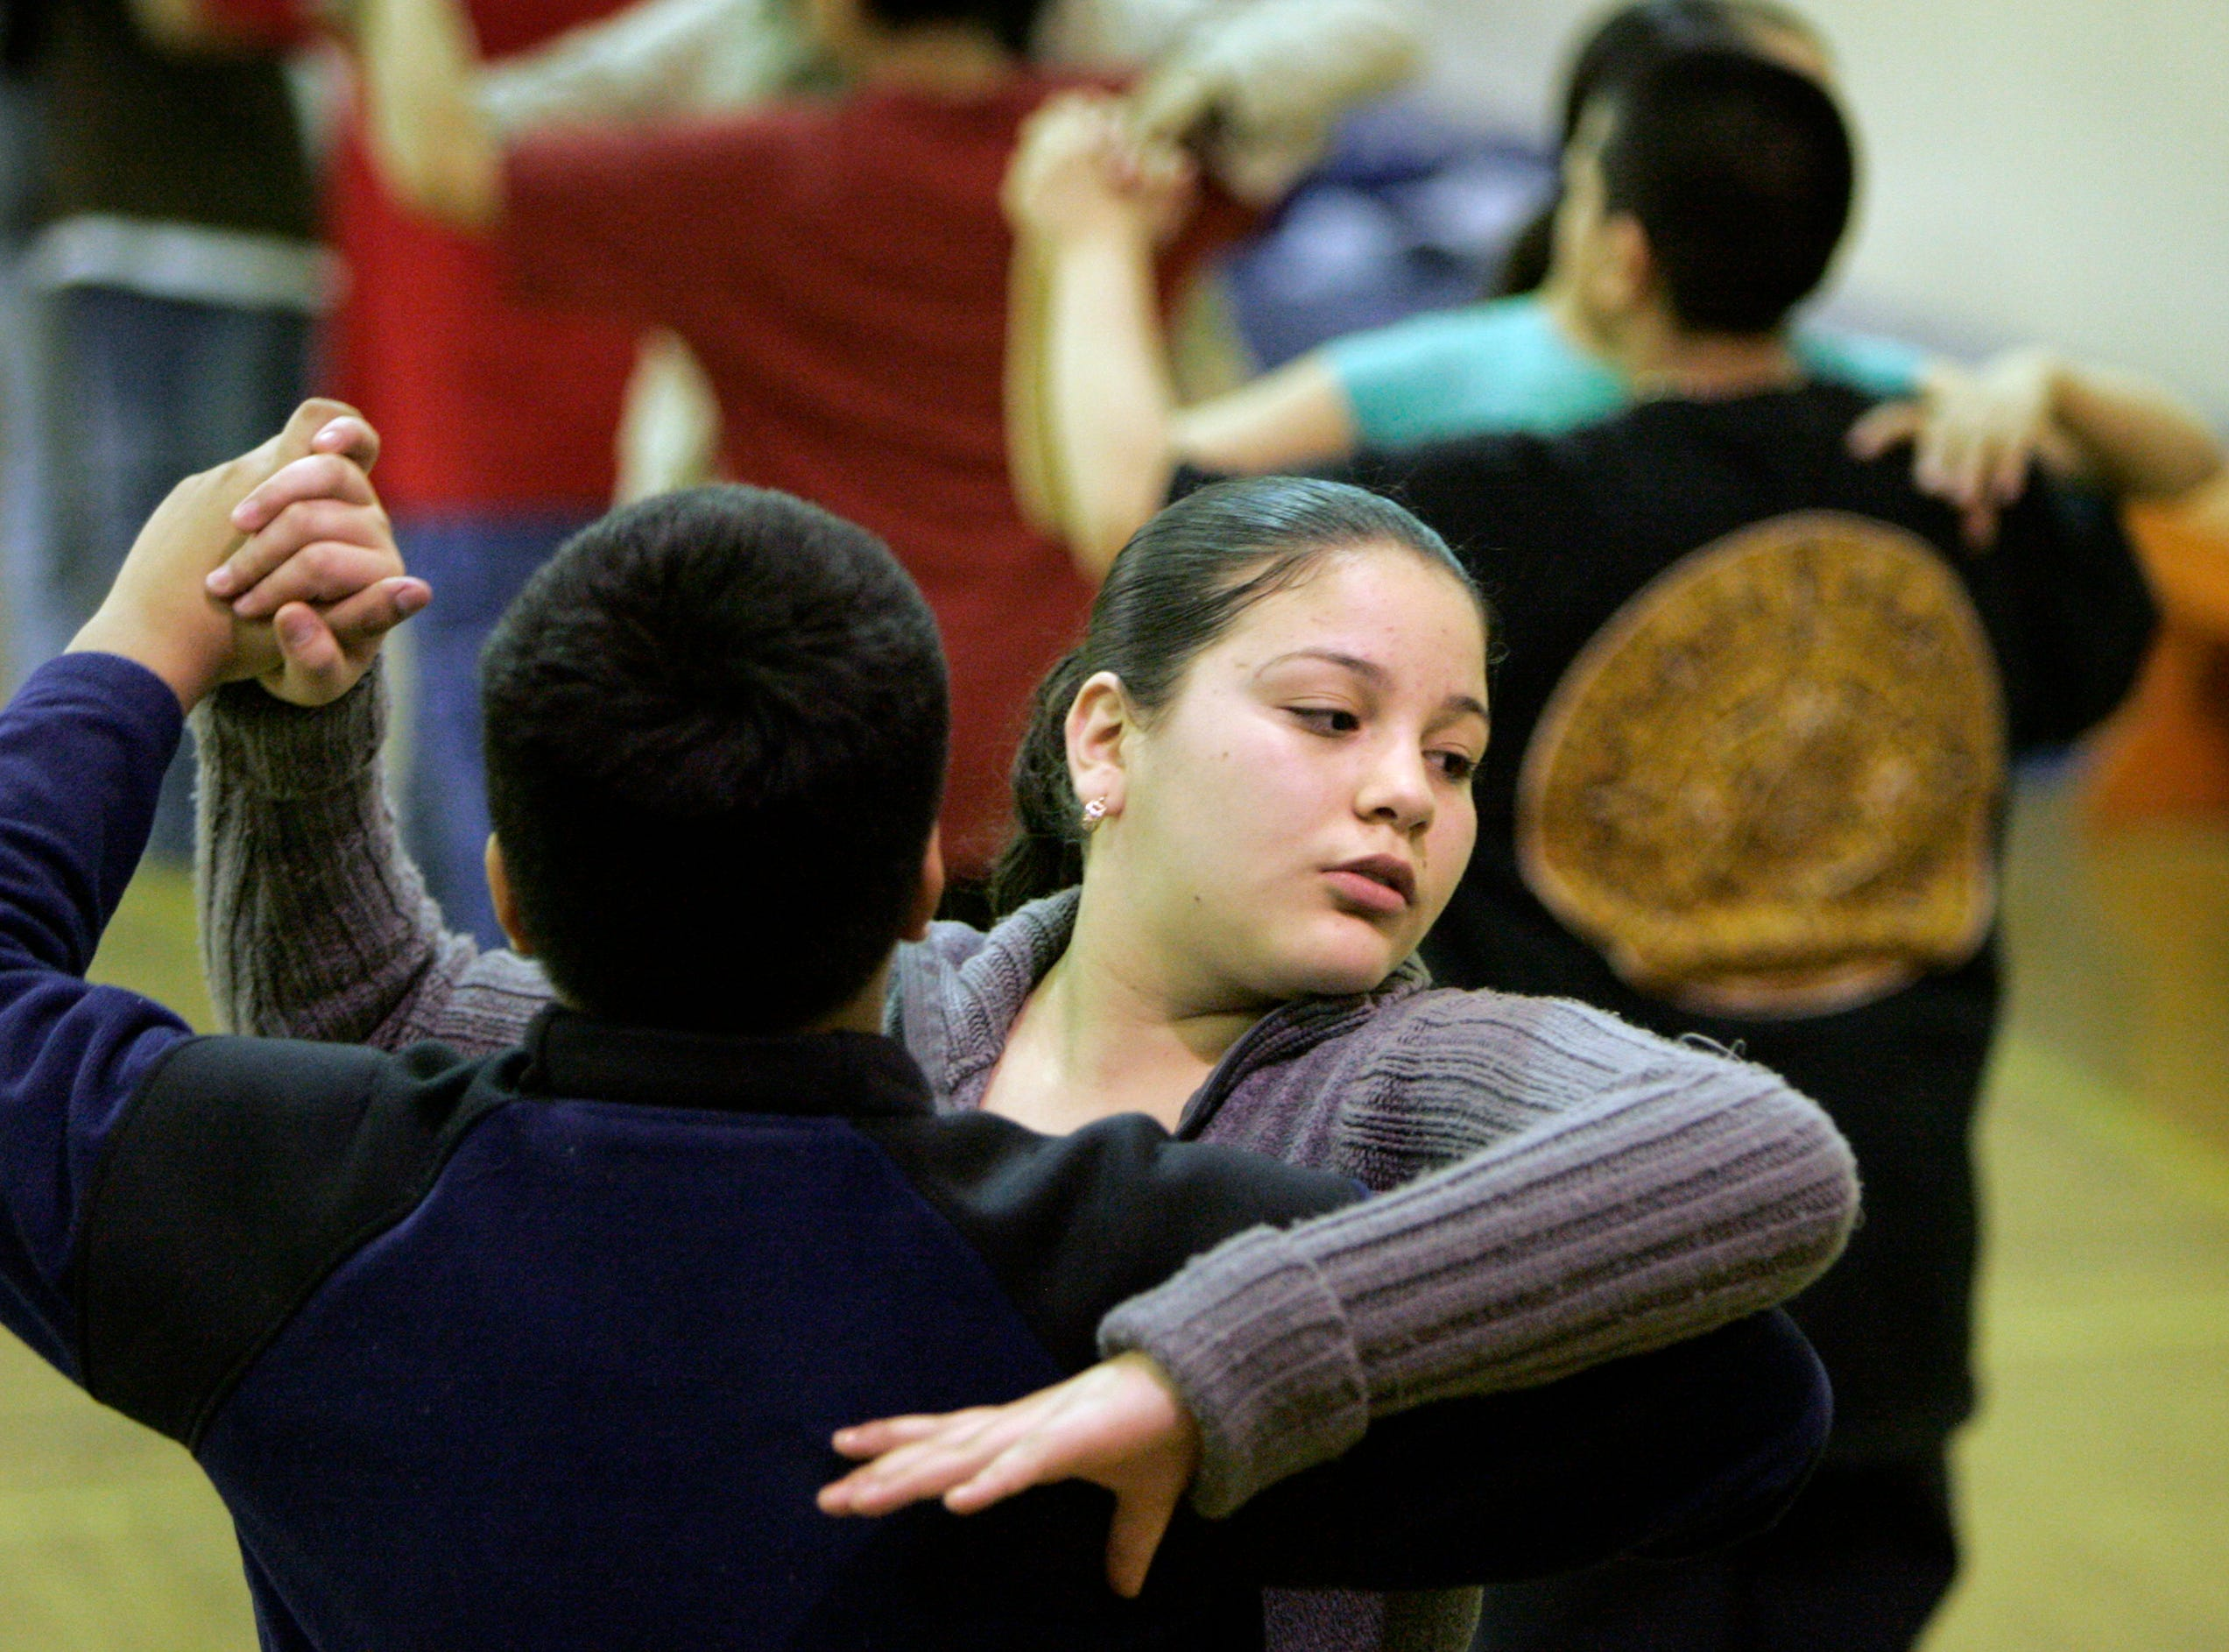 2007: Francisco Contereras, left, swirls his partner Abigail Rivera across the dance floor during dance rehearsal at Vieau School in Milwaukee on April 27, 2007. The school is one of twenty-five Milwaukee schools are participating in upcoming Mad Hot Ballroom competition.